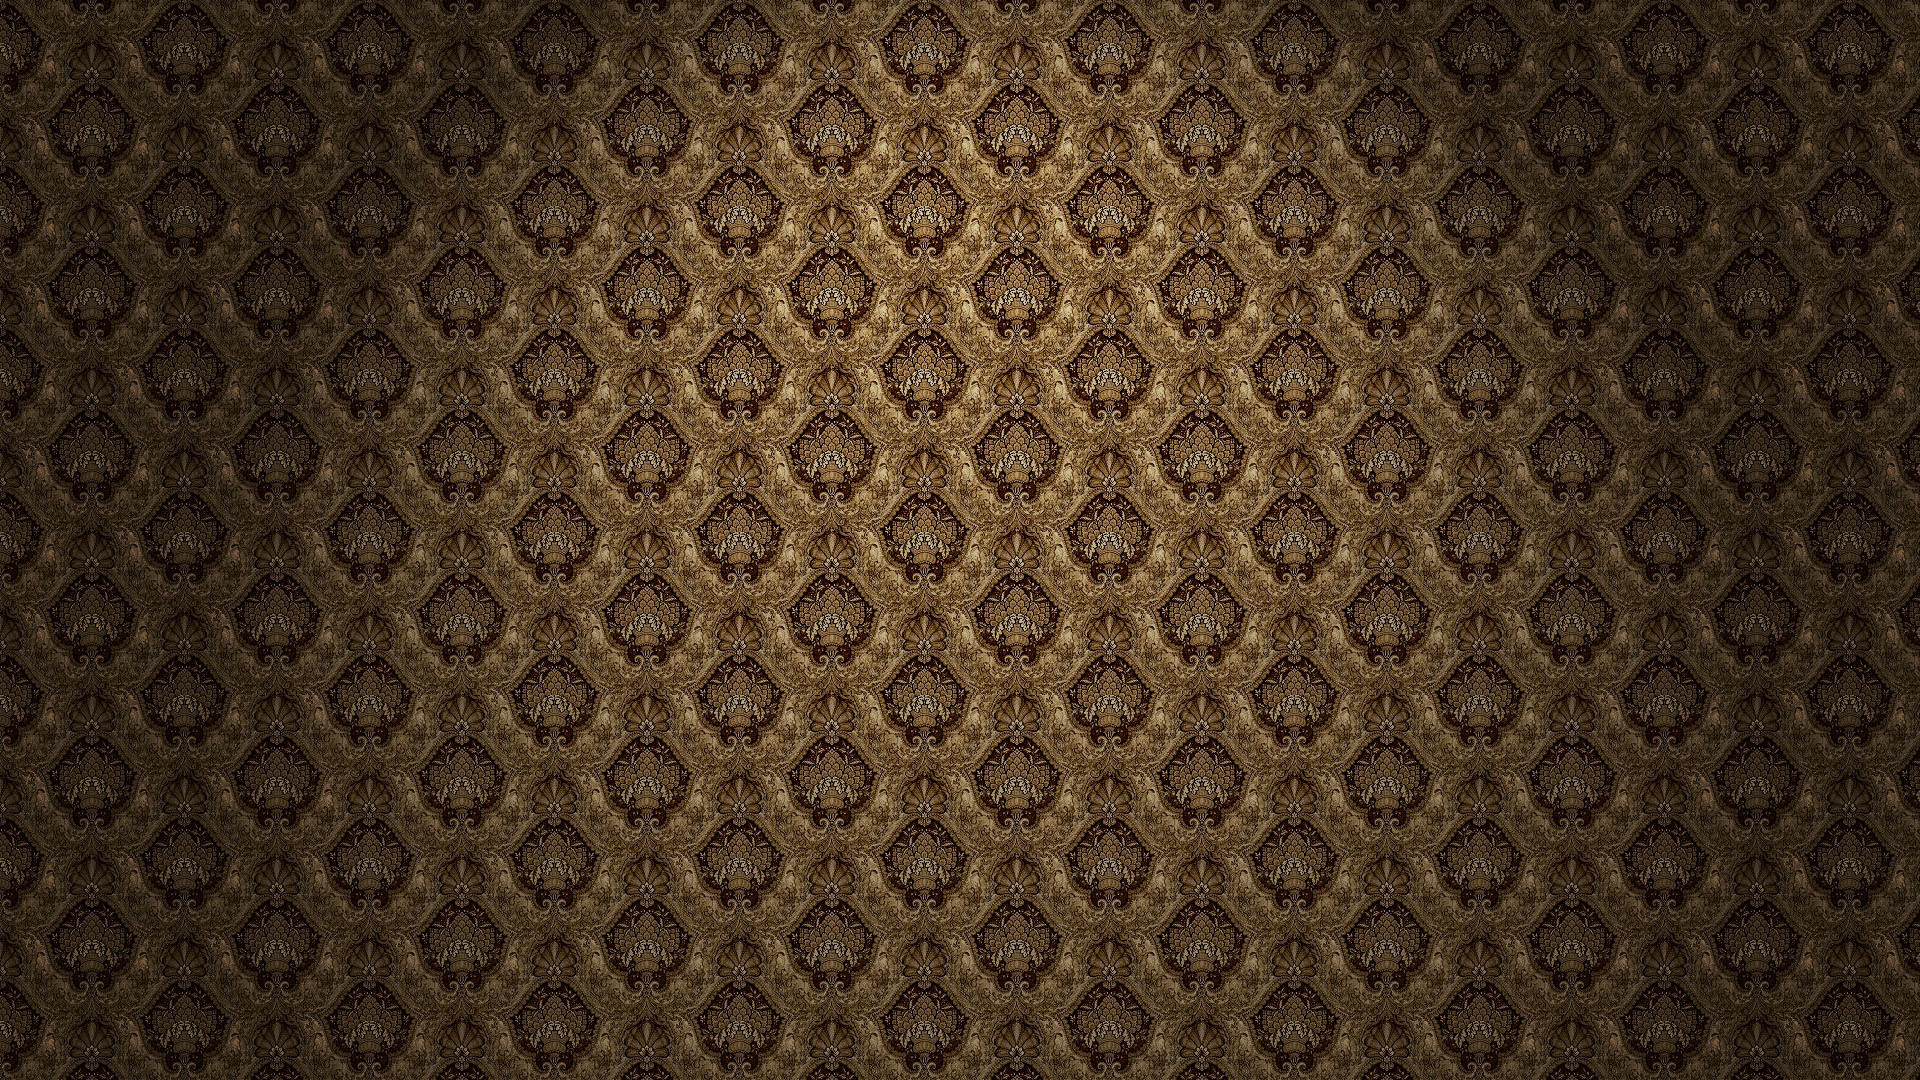 Pattern is also very evident on both the floor and the wallpaper. It almost  looks